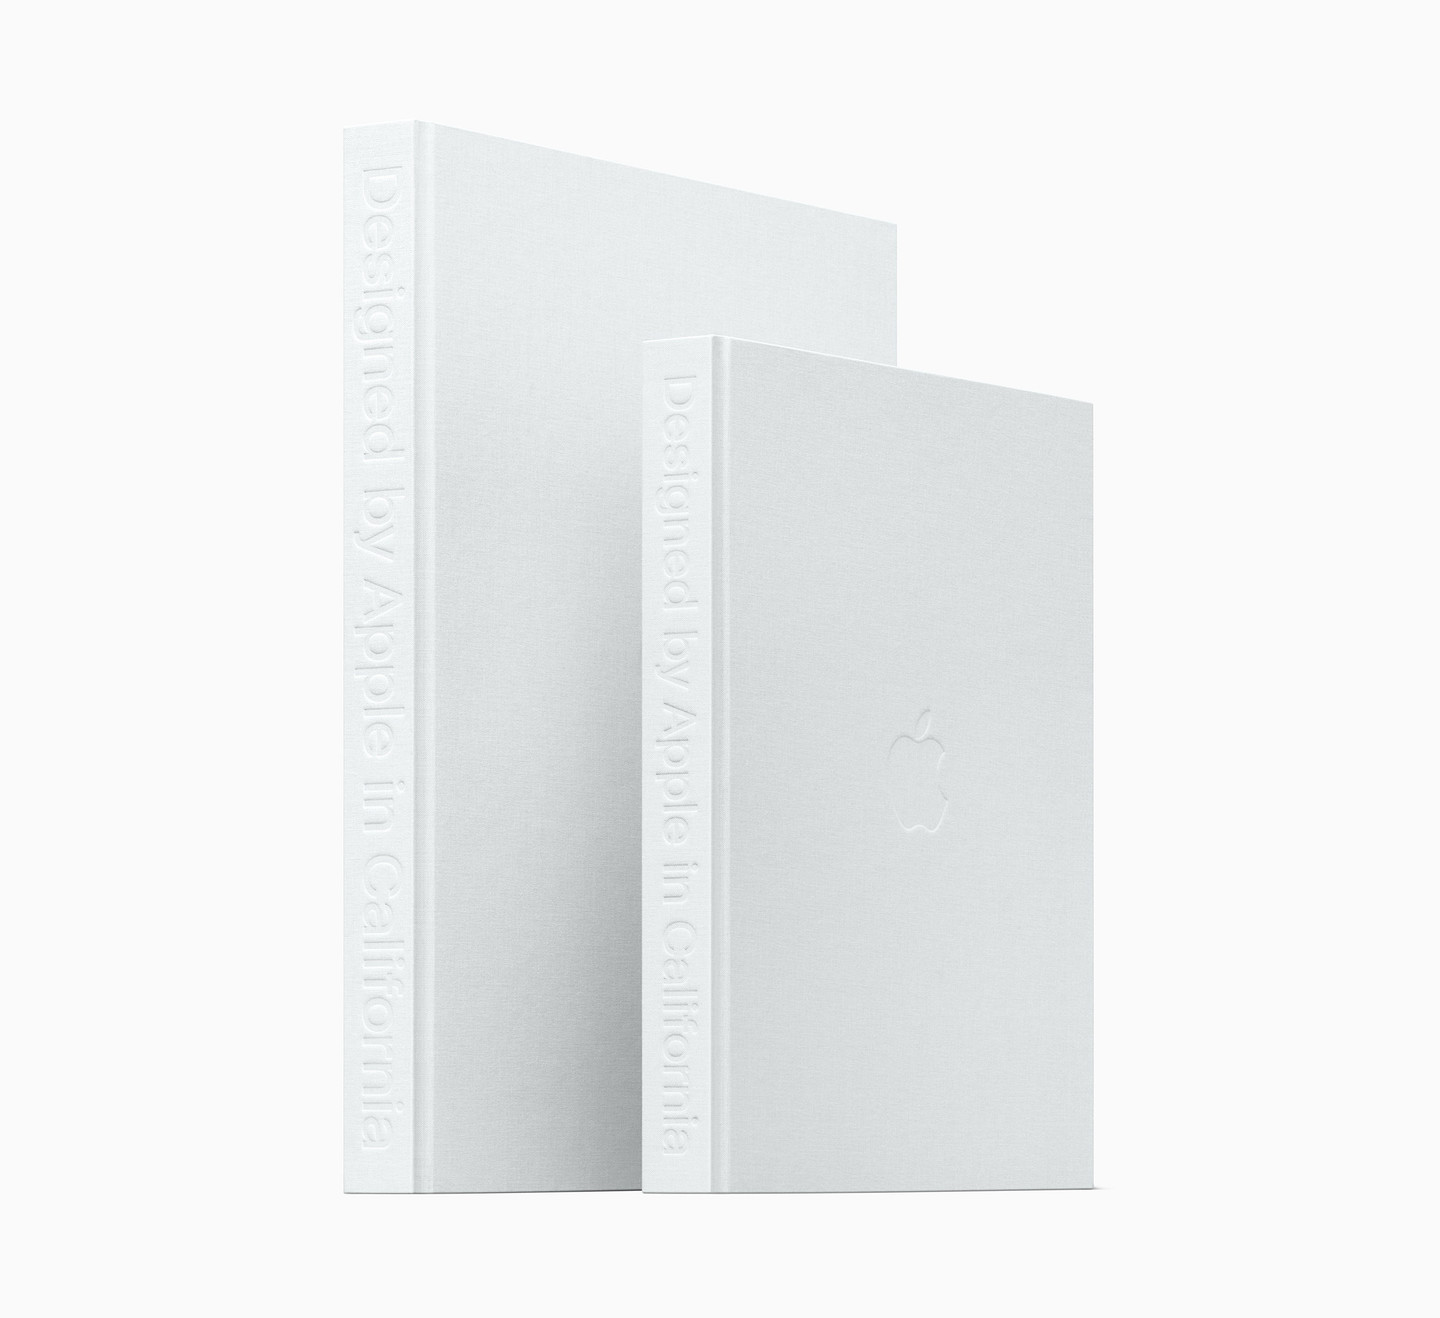 Designed by Apple in California Books